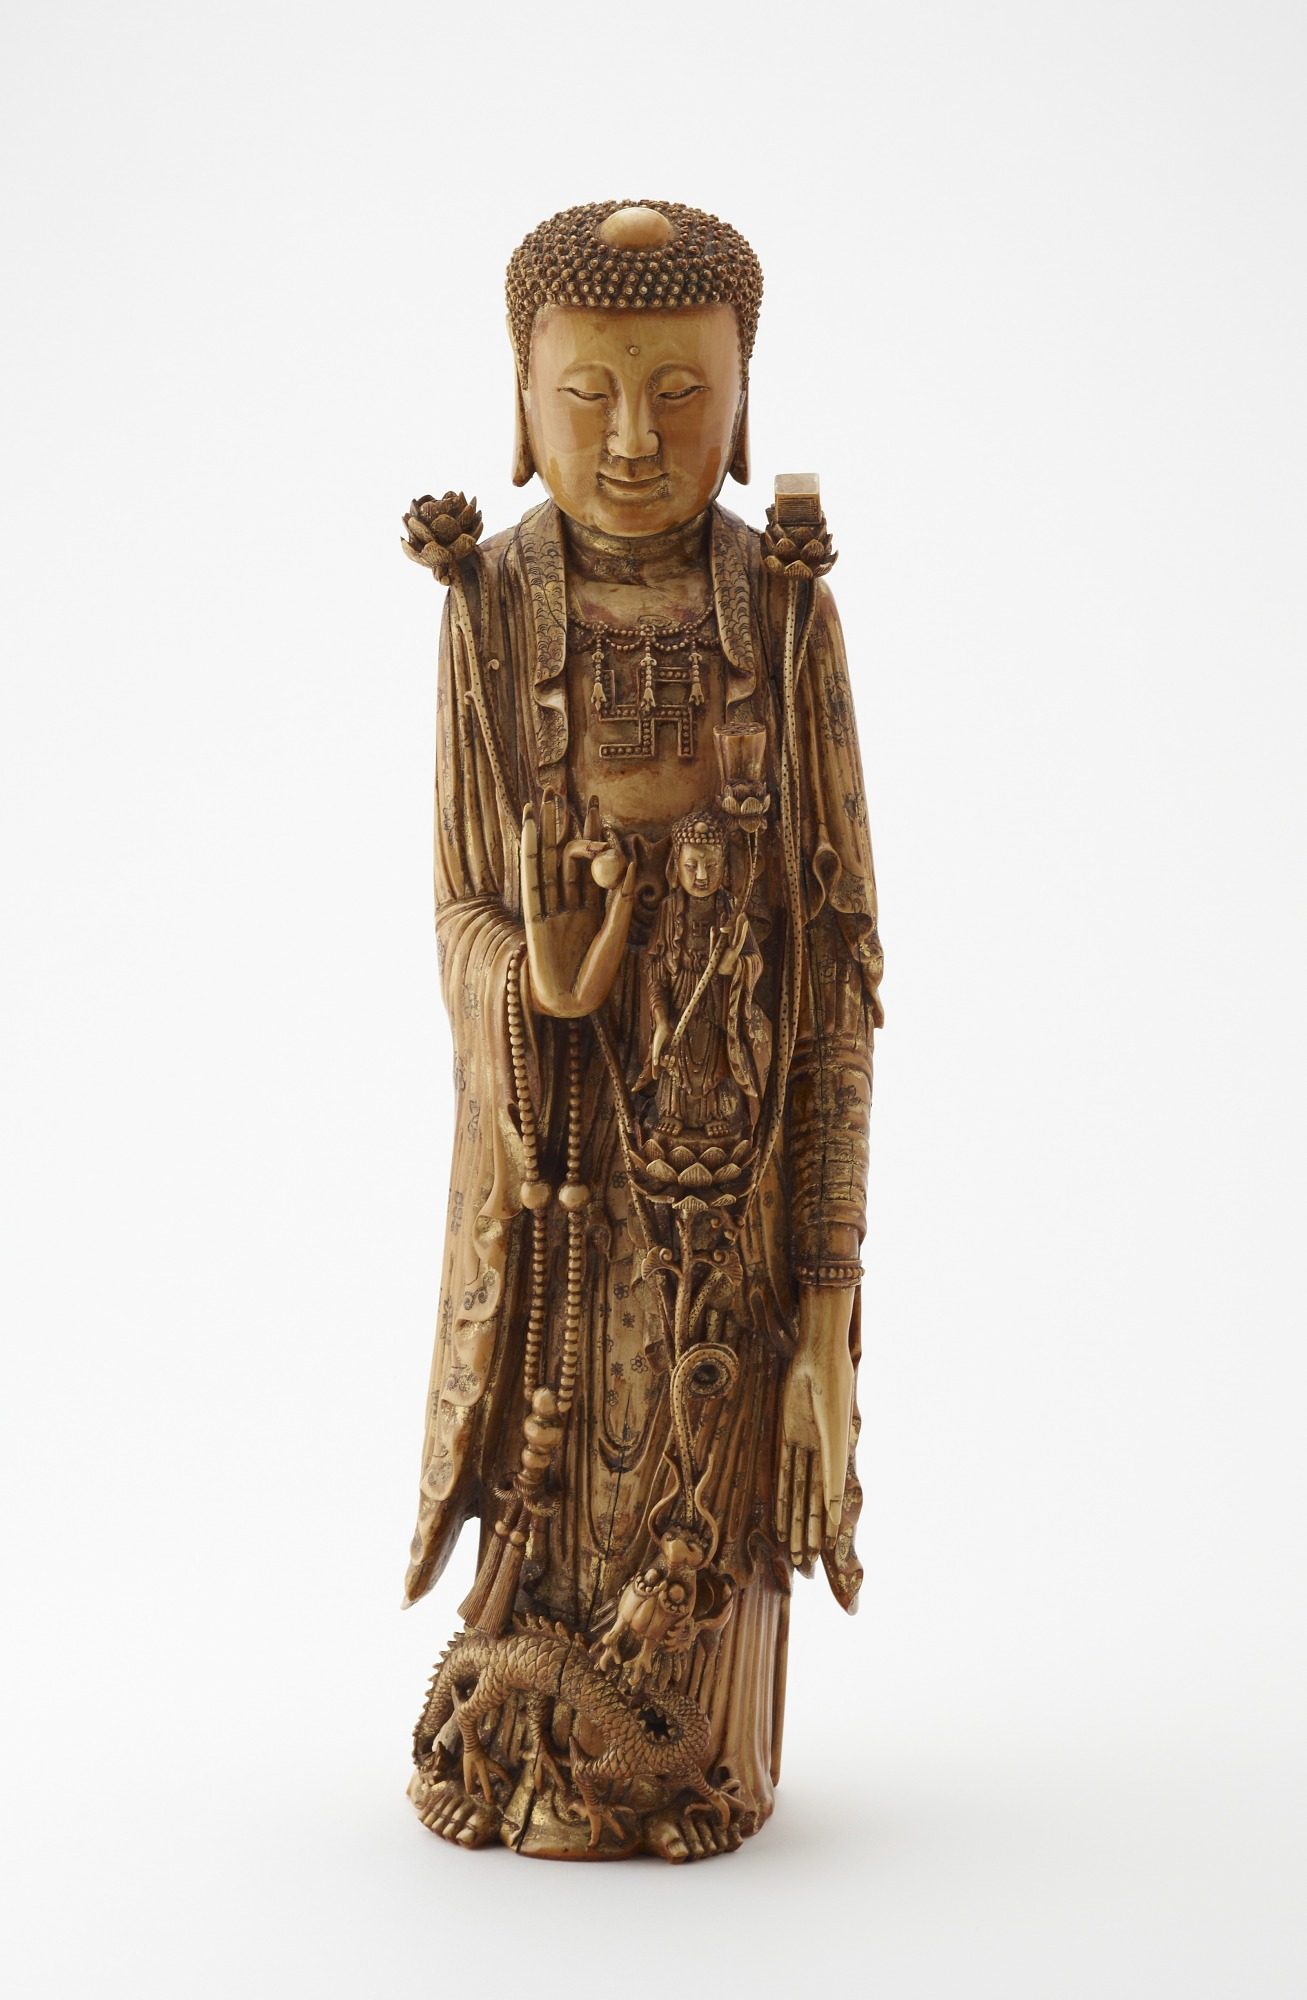 front: Possibly Bodhisattva Avalokitesvara (Guanyin) in the guise of a Buddha